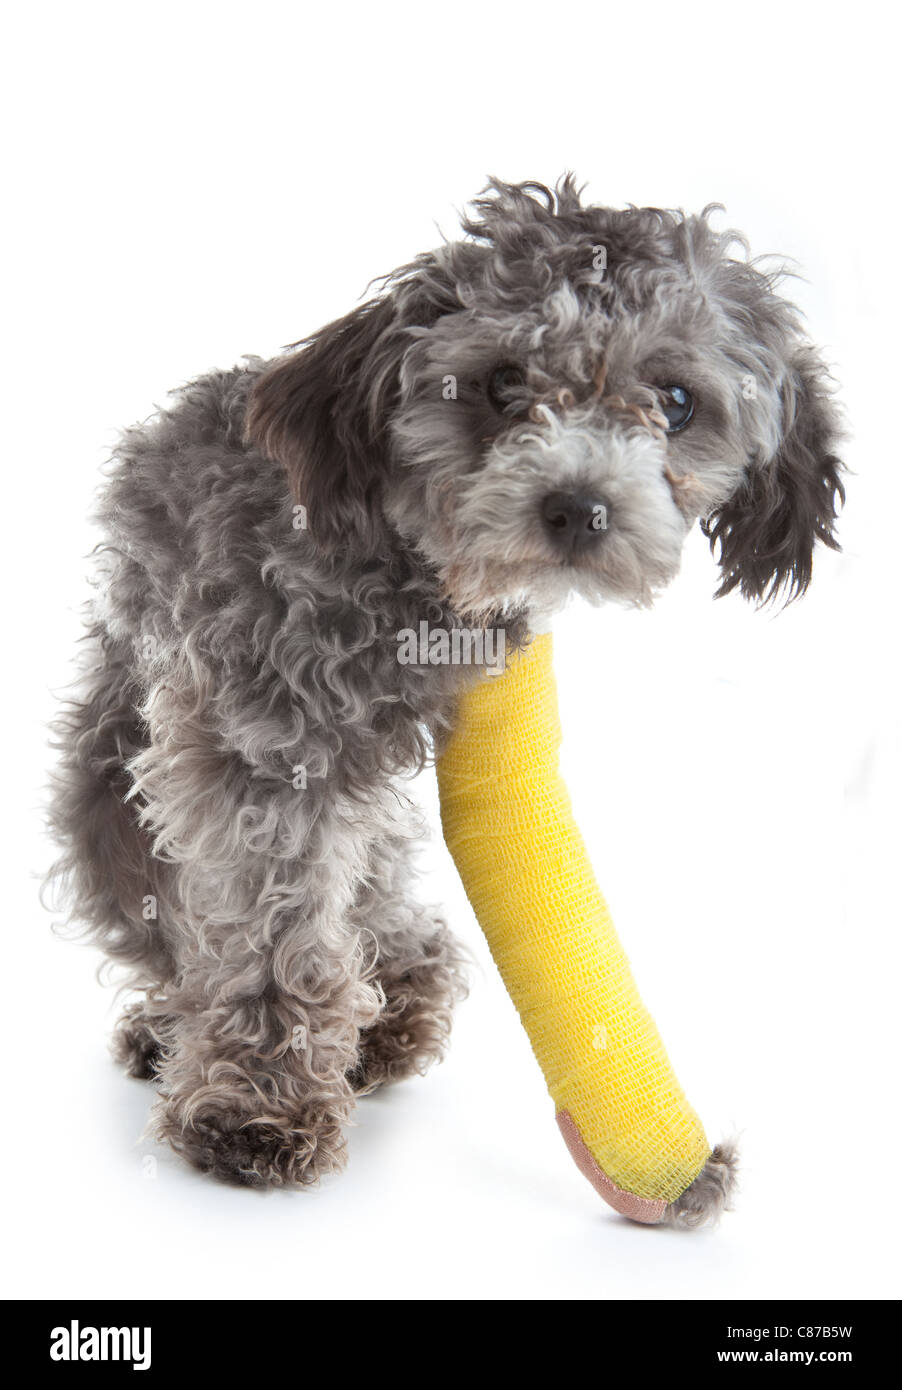 Dog with broken leg in a cast - Stock Image